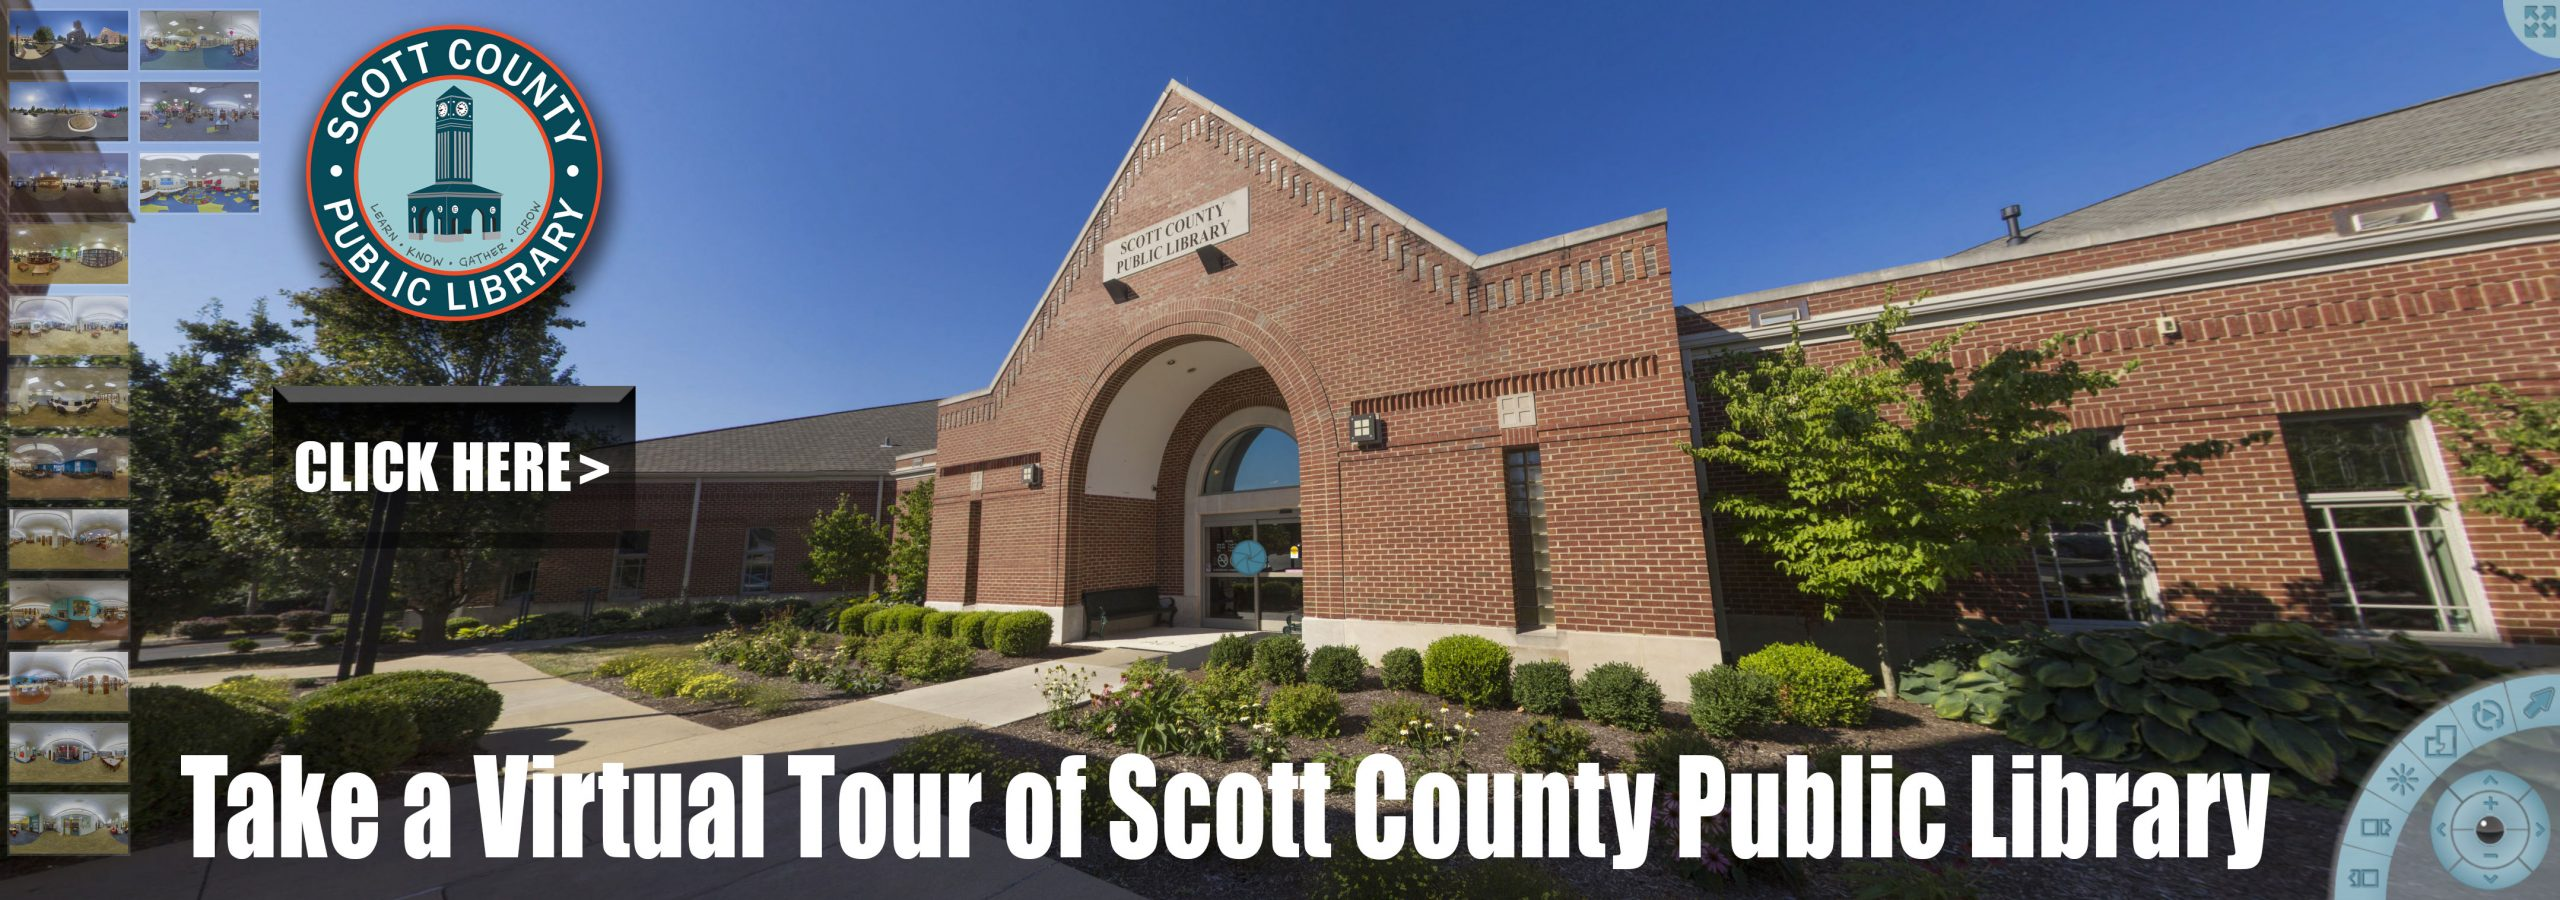 Virtual Tour of Scott County Public Library